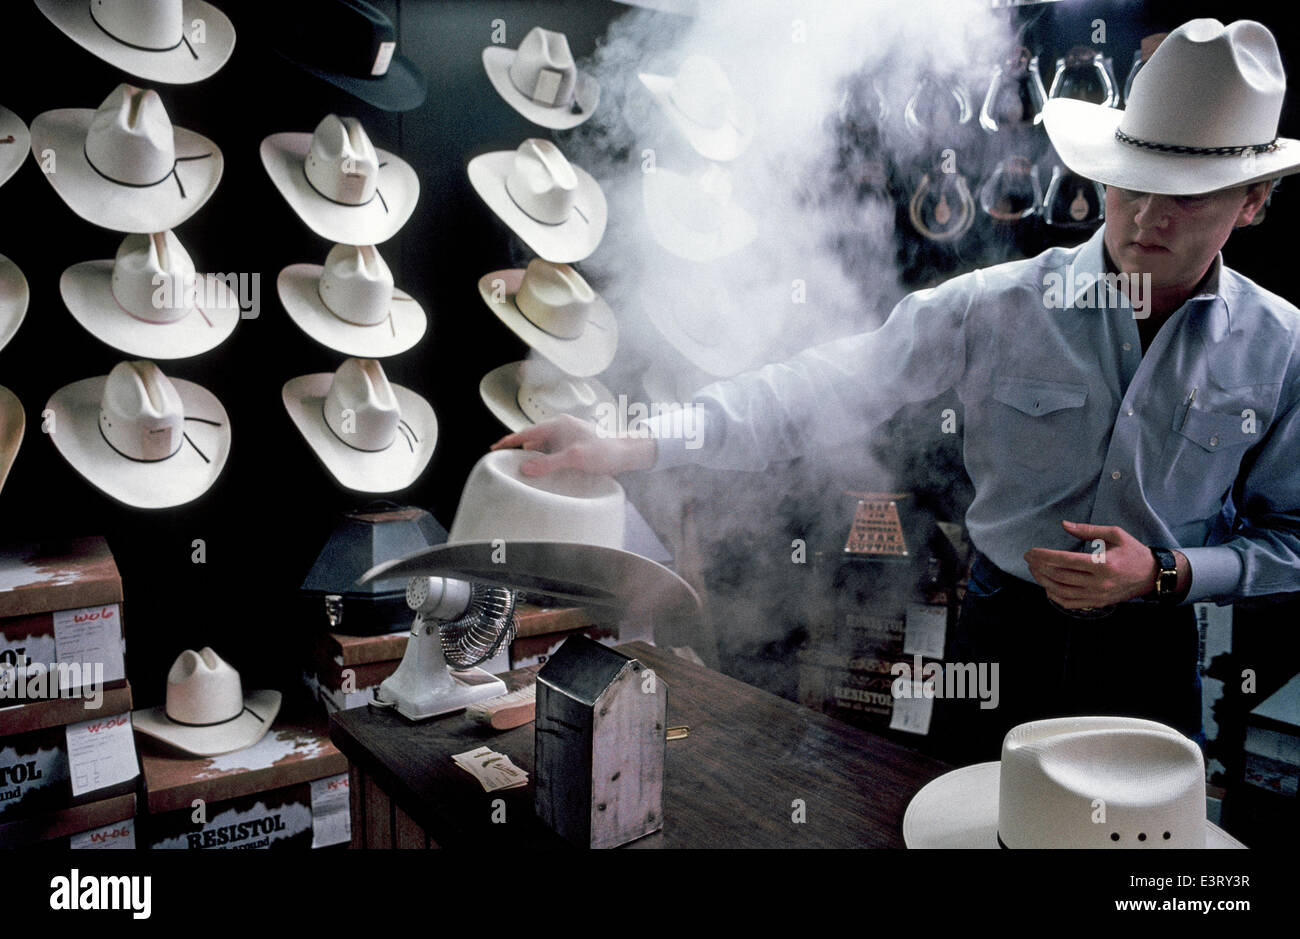 c9c661bf596 A professional hatter uses steam to custom shape the crown and brim of a  white straw